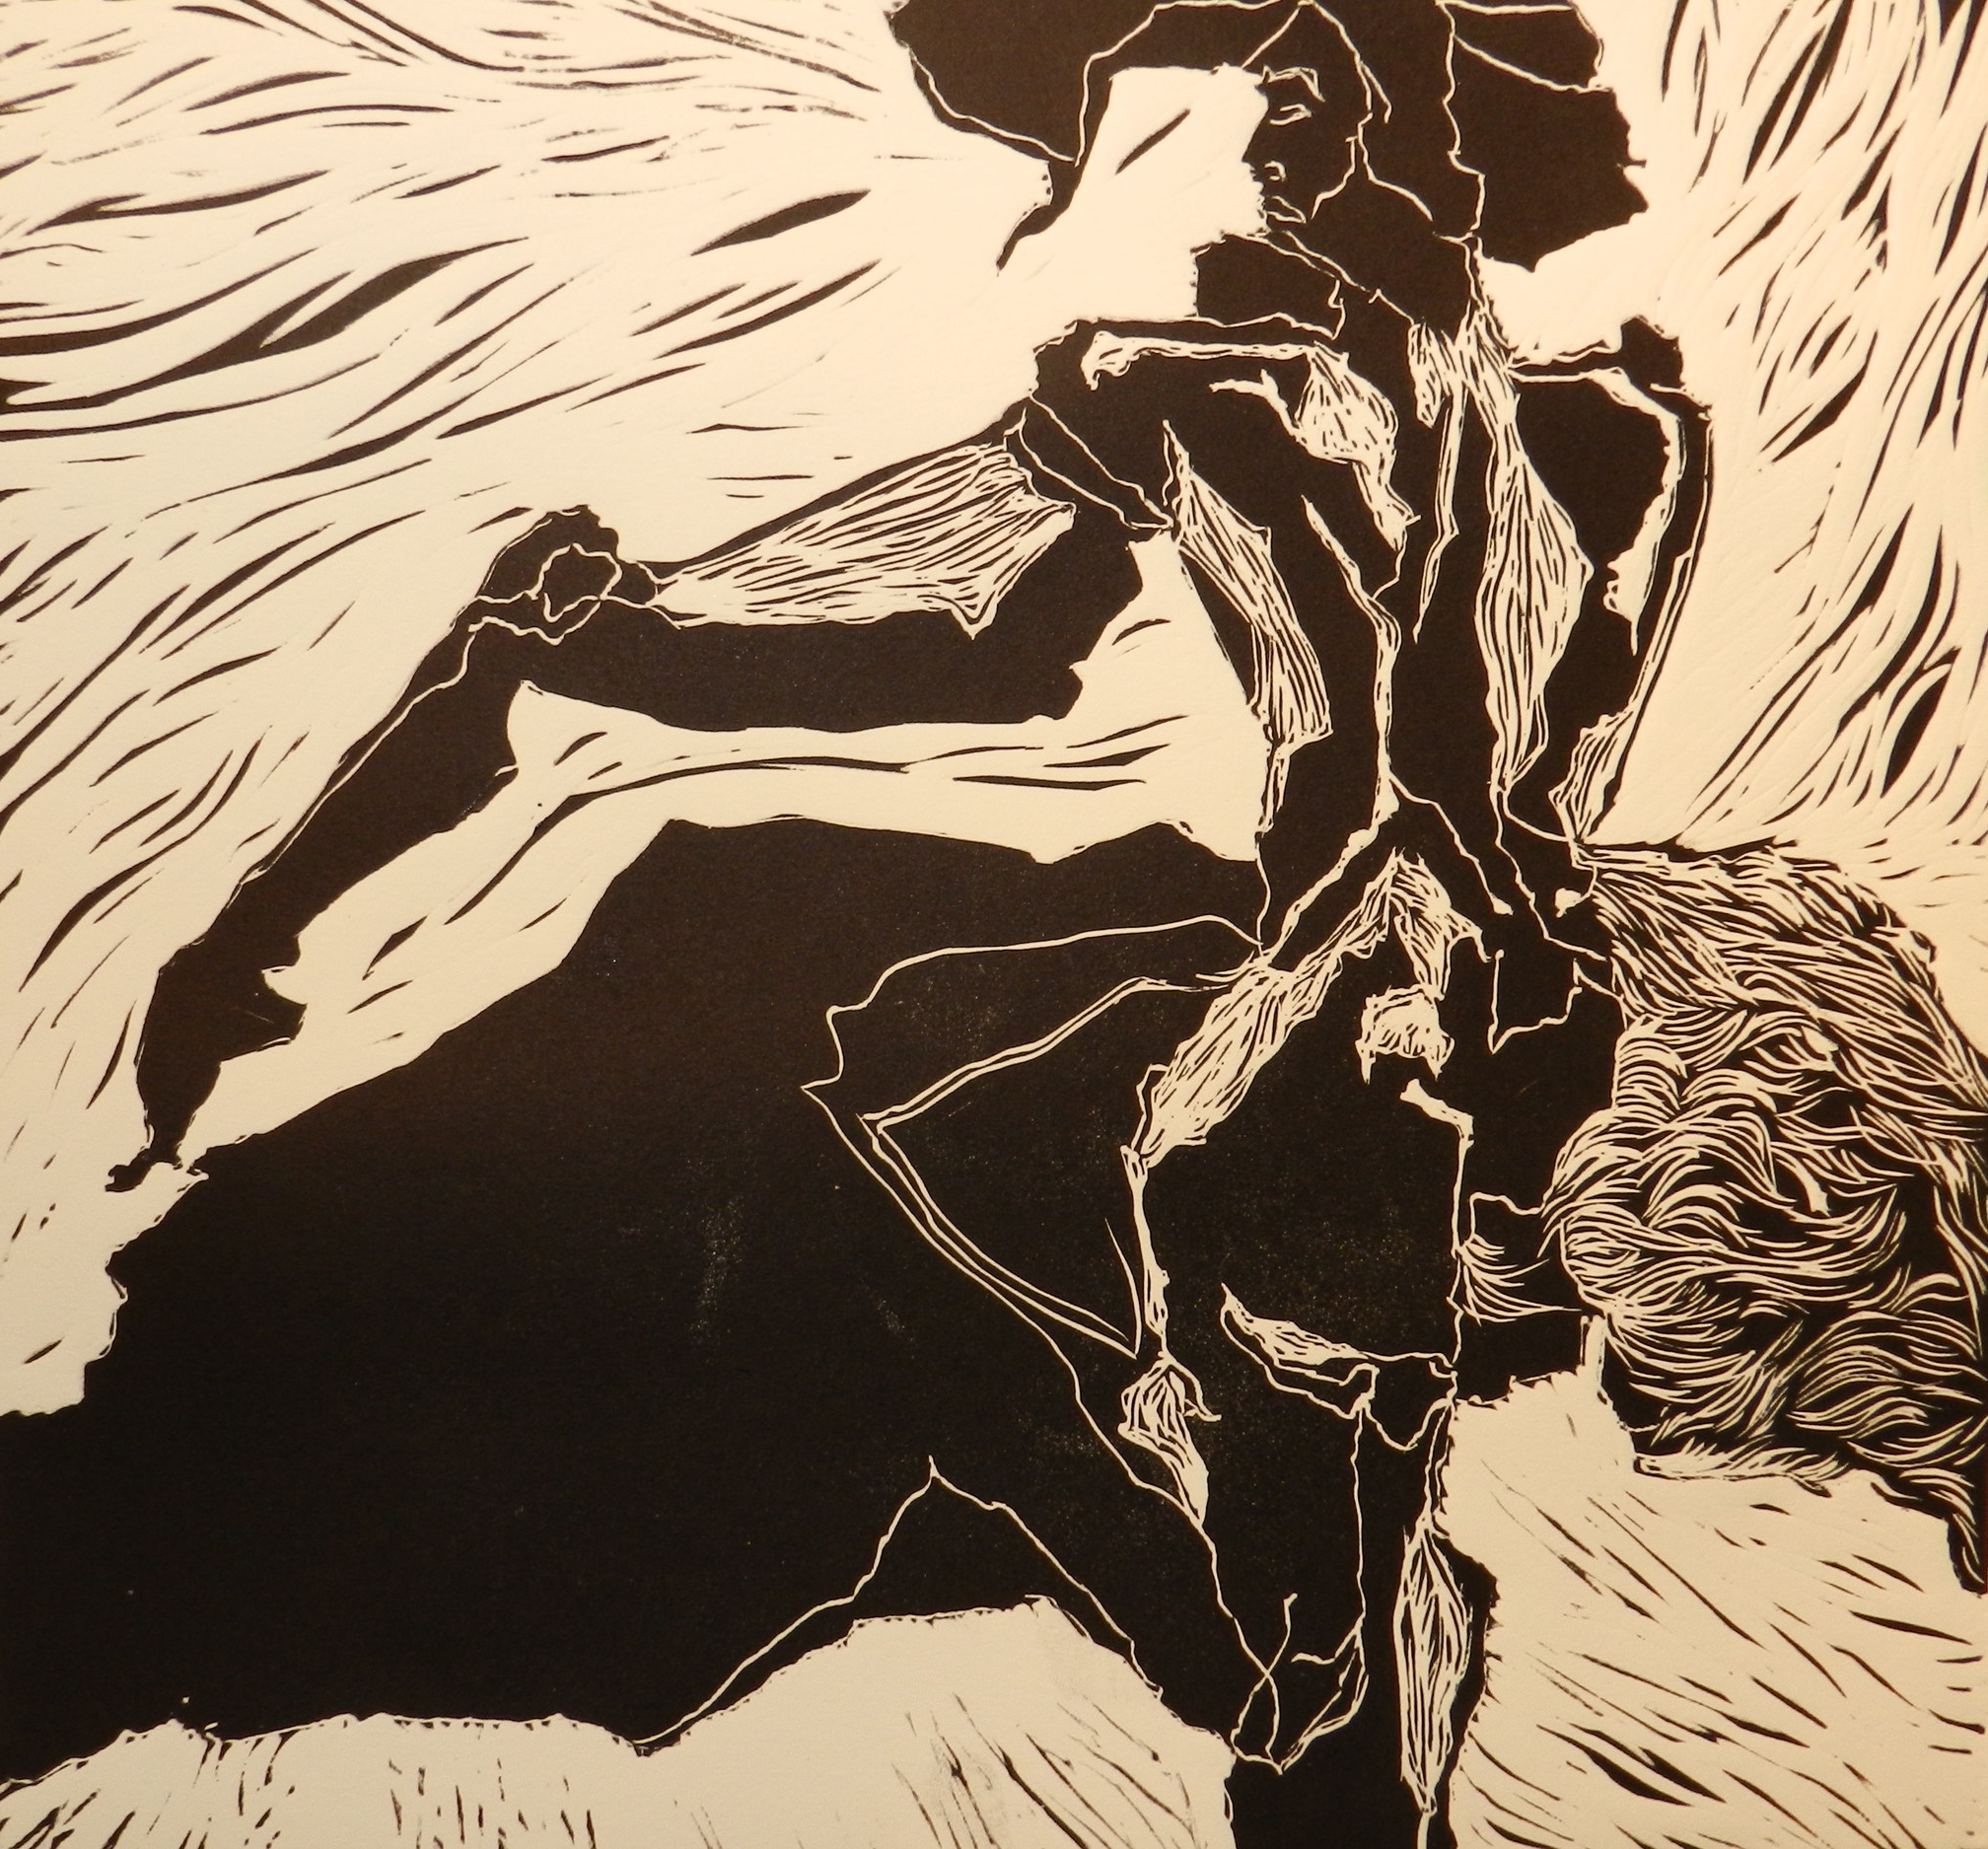 Relief print on paper. 2011